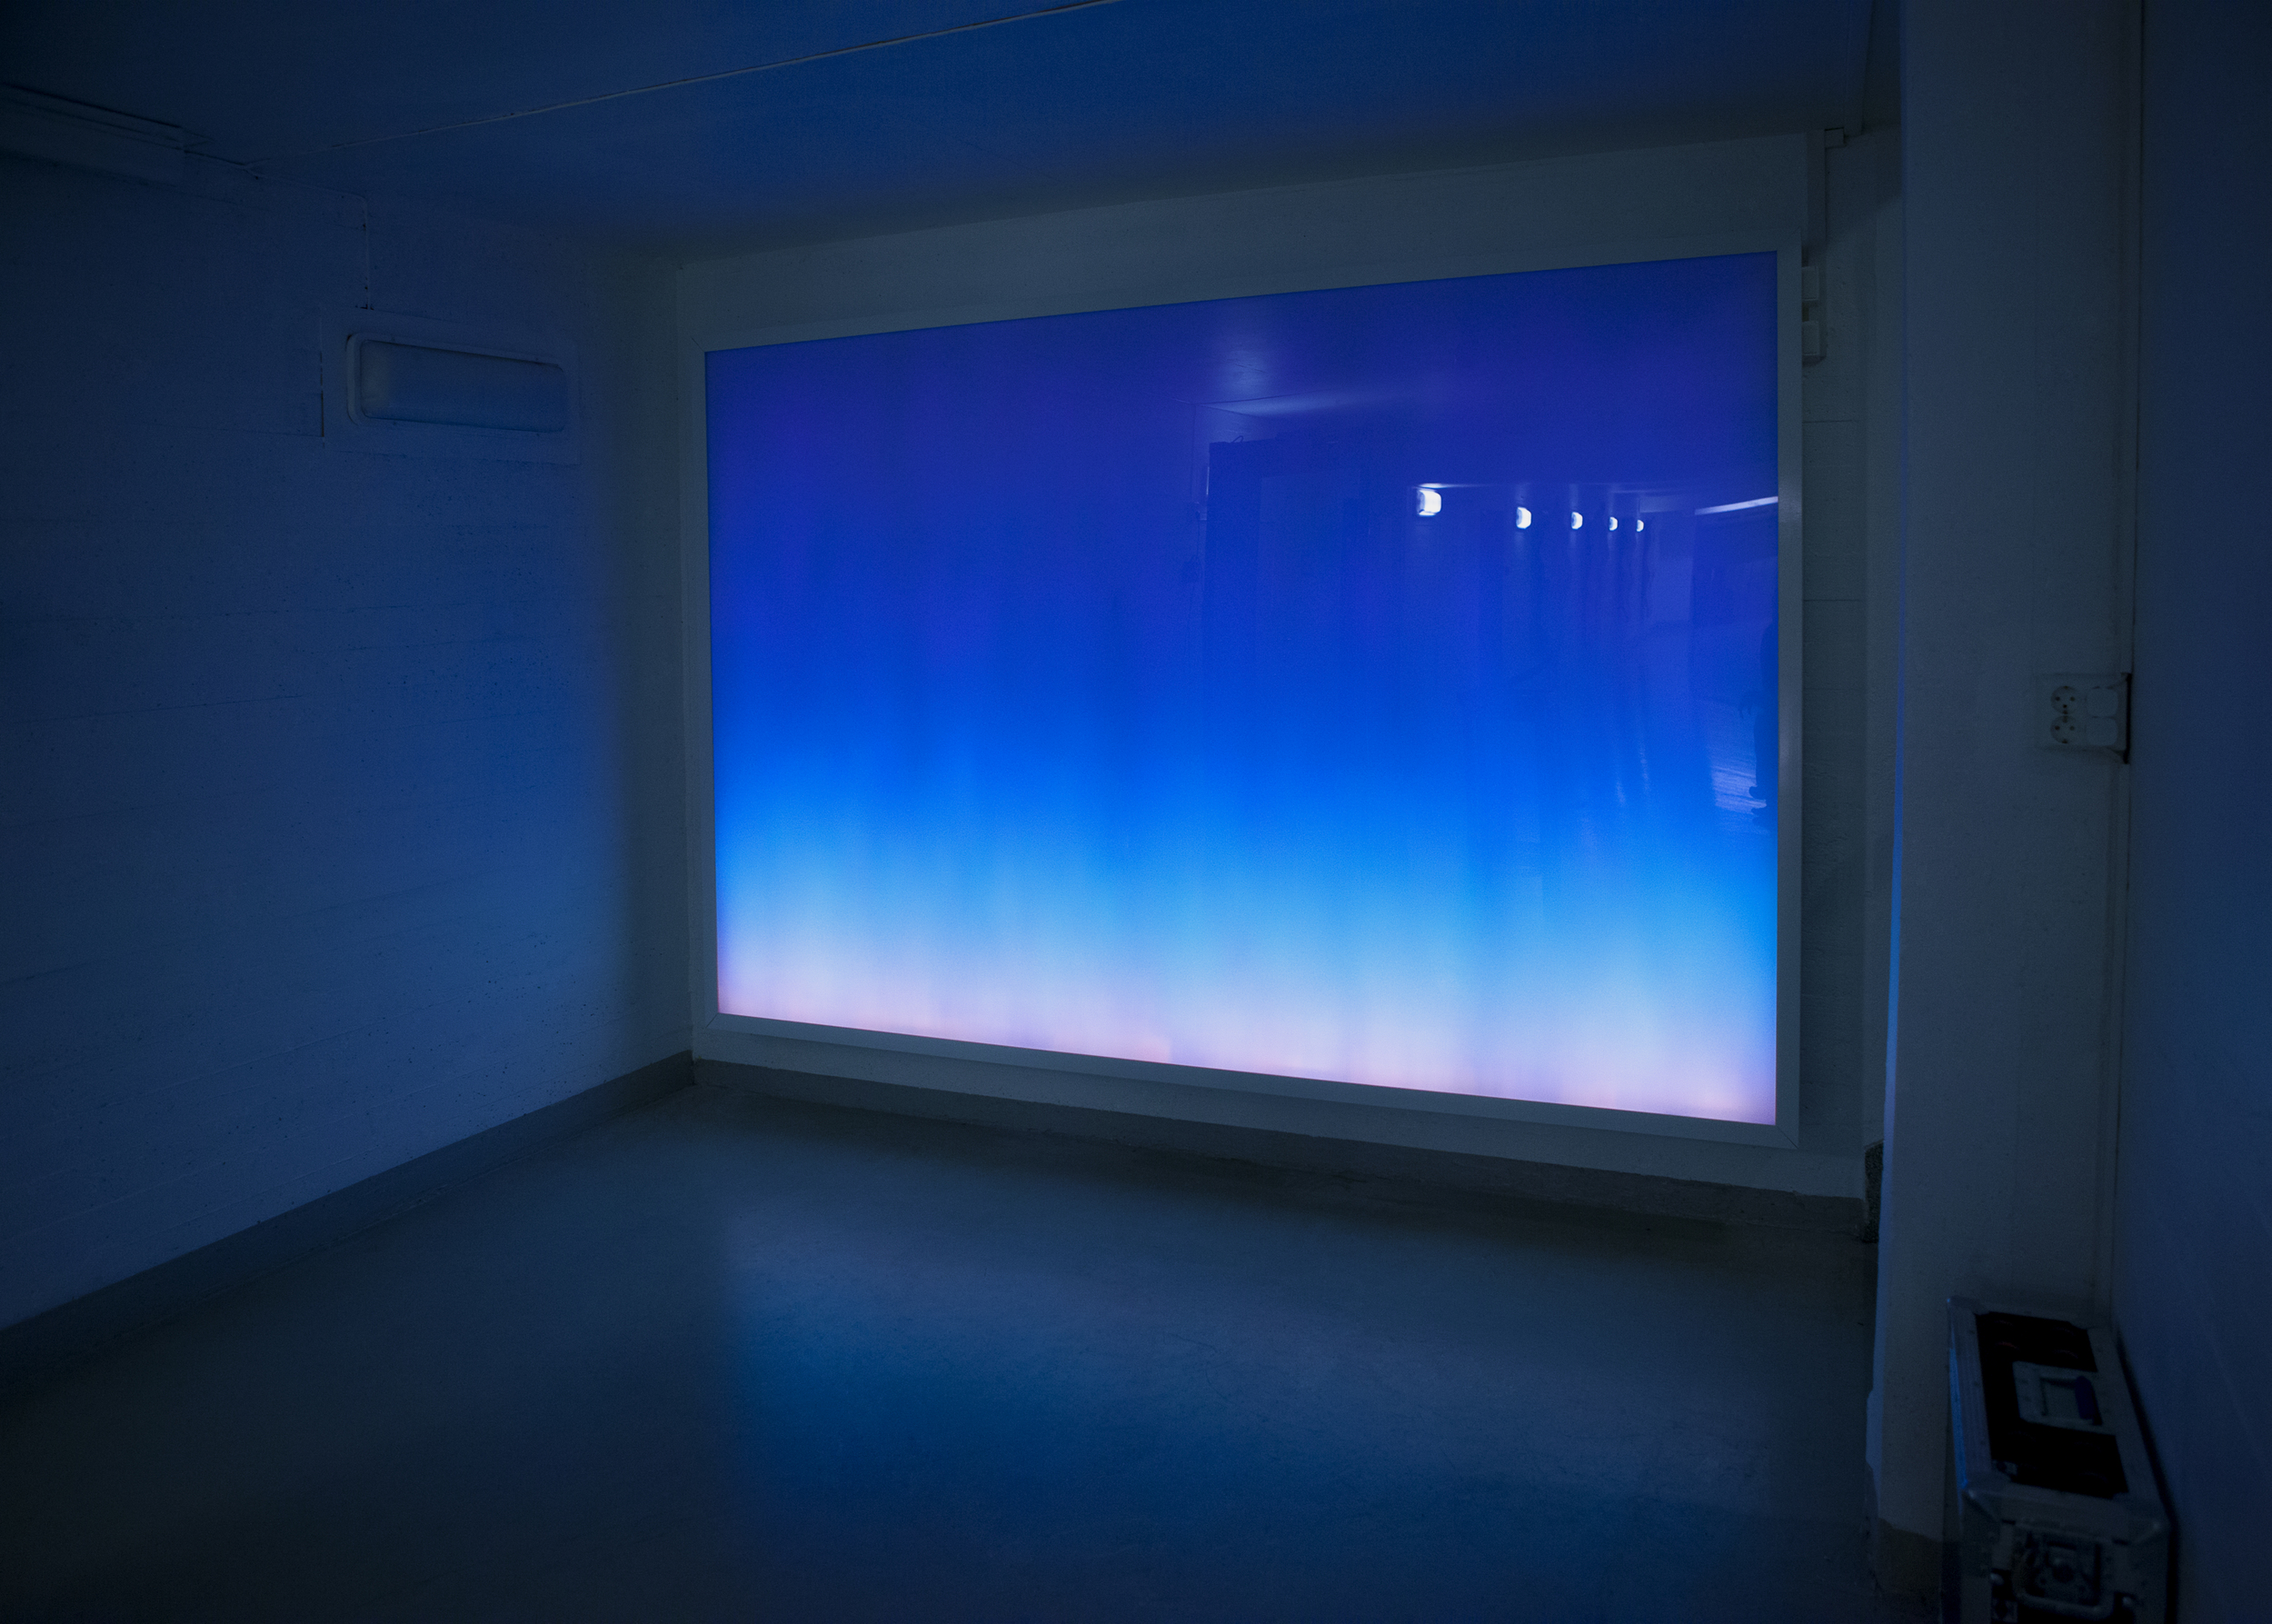 Horizon . Ila Prison, 2011. Light mode: Wednesday morning. Programmed light box with LED screen, aluminum case with acrylic and Lexan fronts, 200 x 300 x 30 cm.